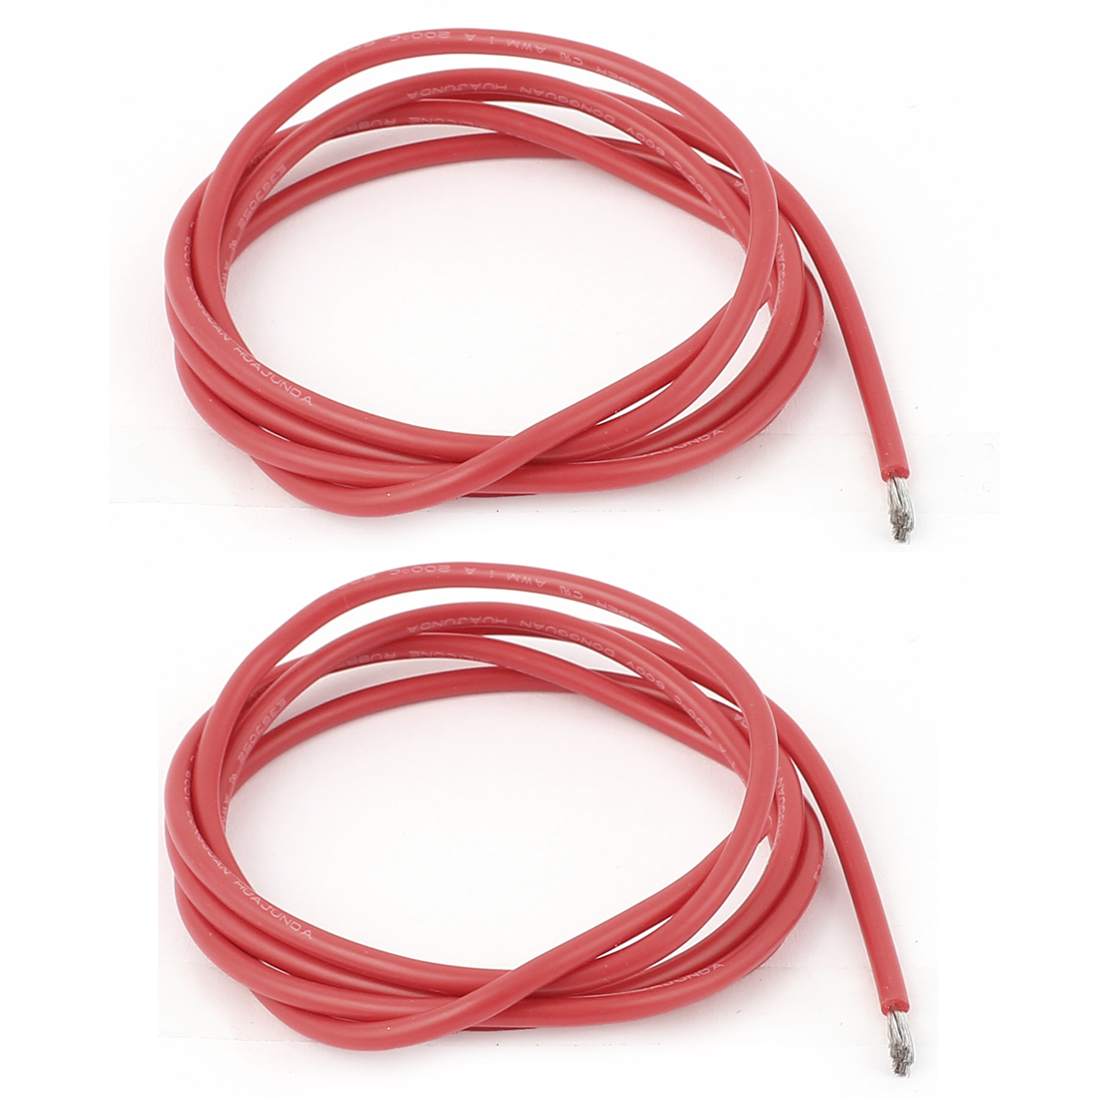 2Pcs 1M 16AWG High Temperature Resistant Soft Silicone Wires Red